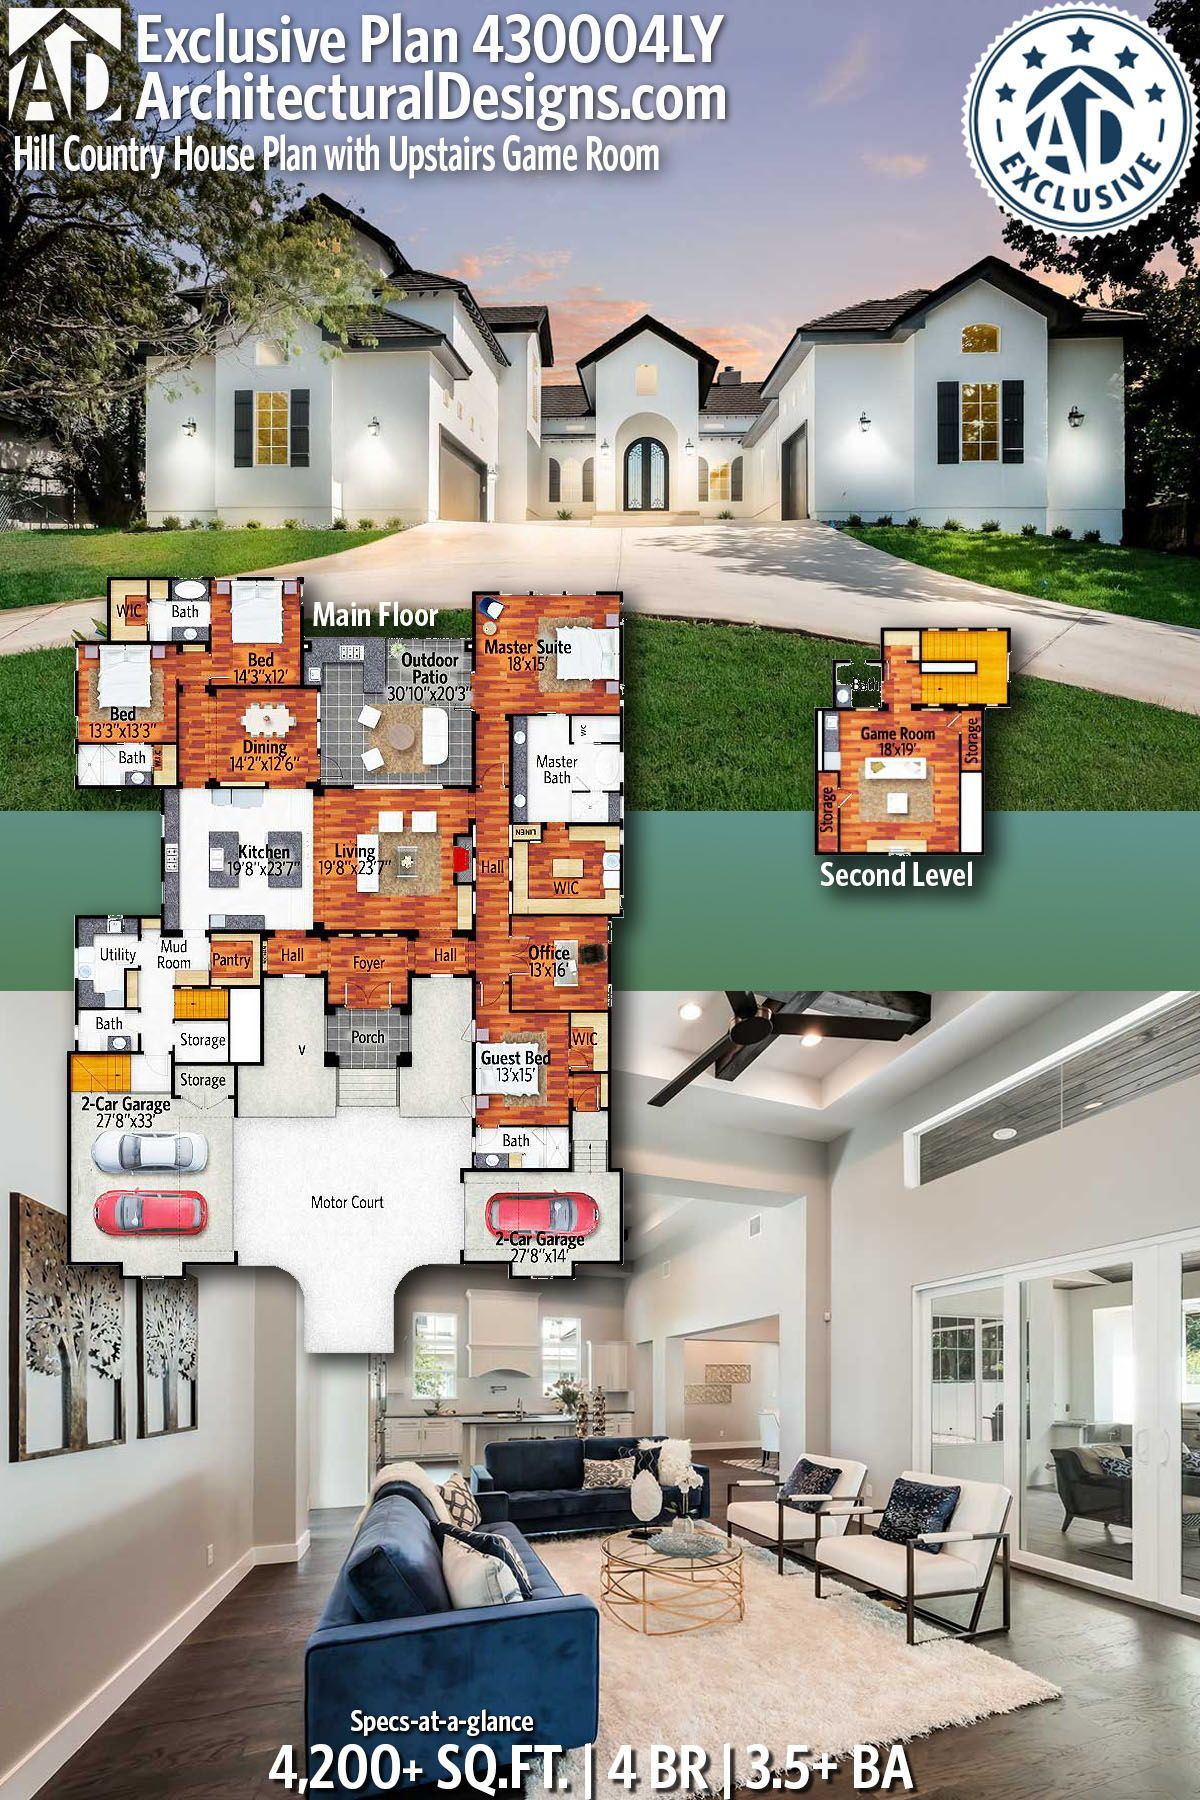 Architectural Designs Exclusive Hill Country House Plan Has A Courtyard Entry And An Upstairs Game Room Over 4 Country House Plan Courtyard Entry House Plans